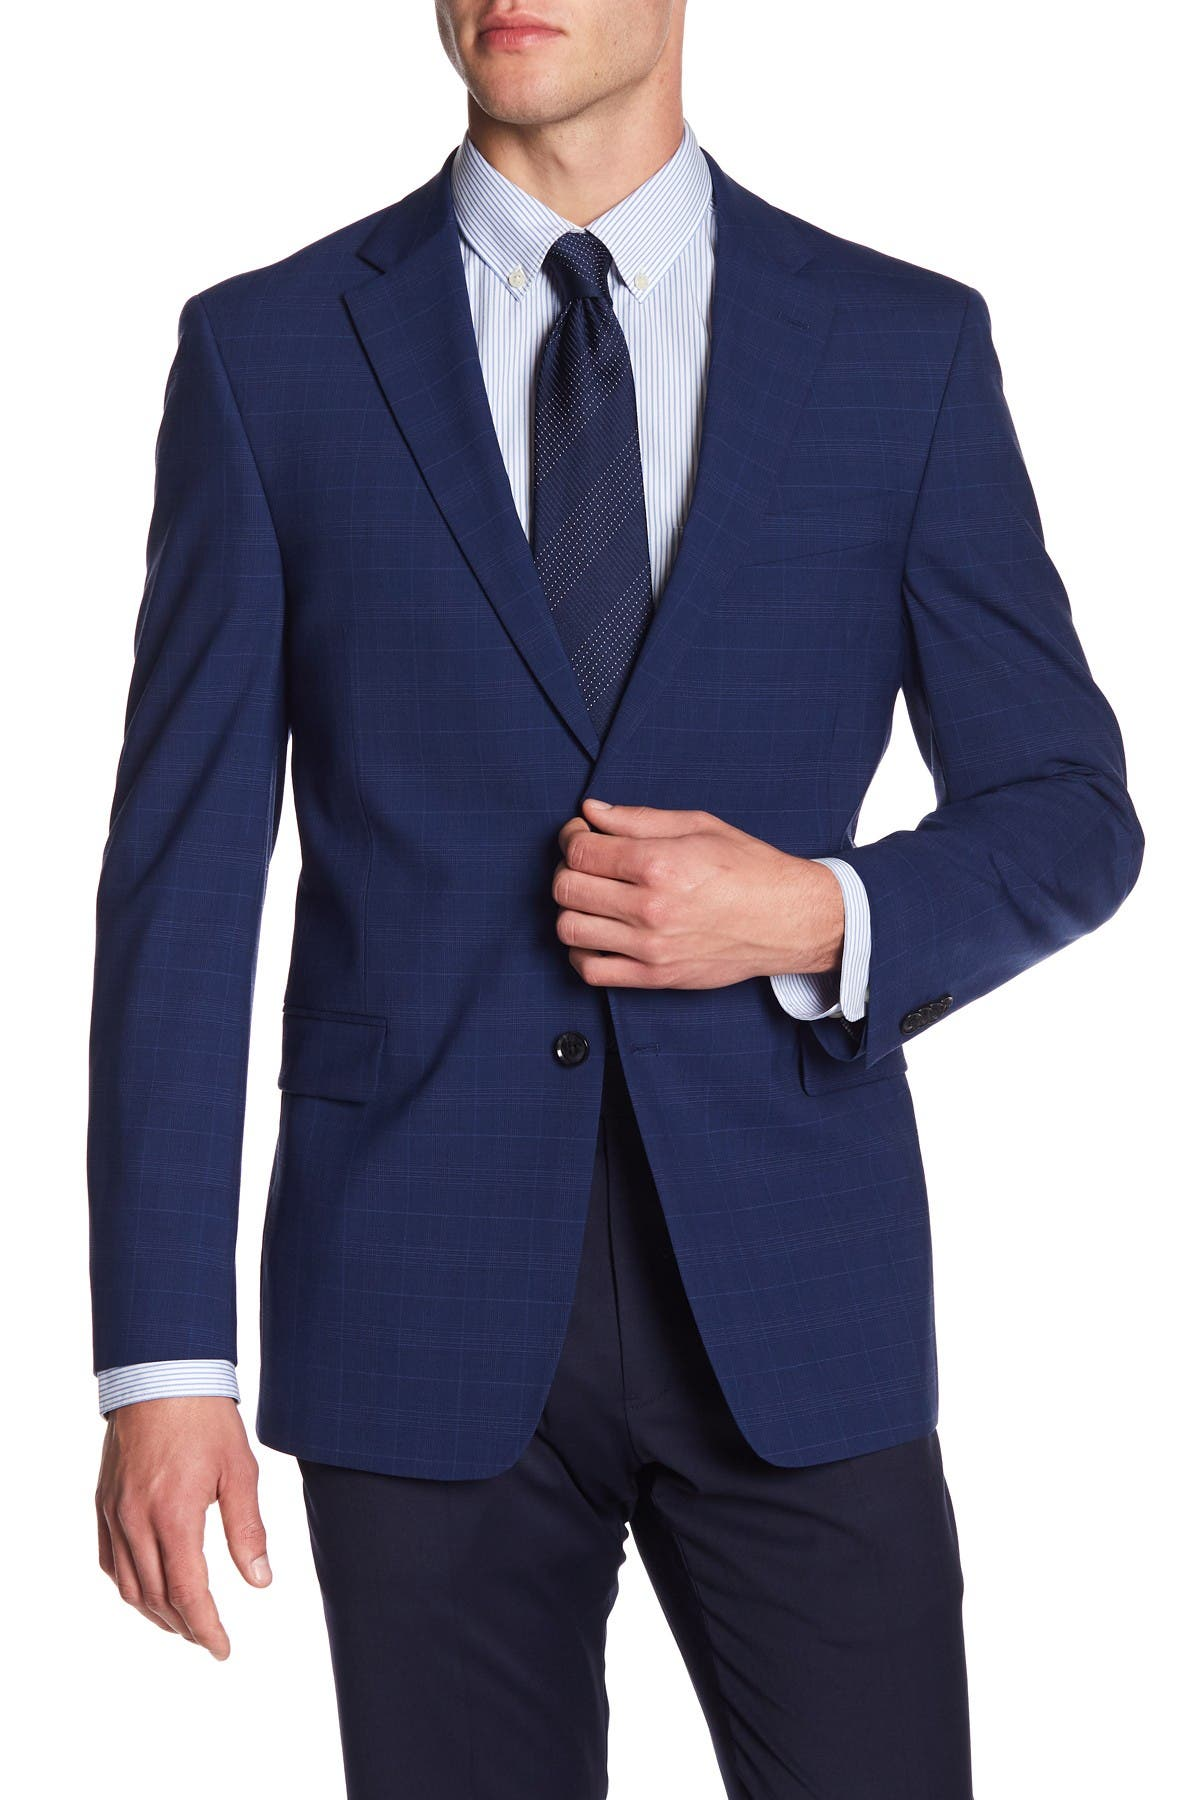 Image of Tommy Hilfiger Adams Navy Plaid Two Button Notch Lapel Suit Separates Jacket